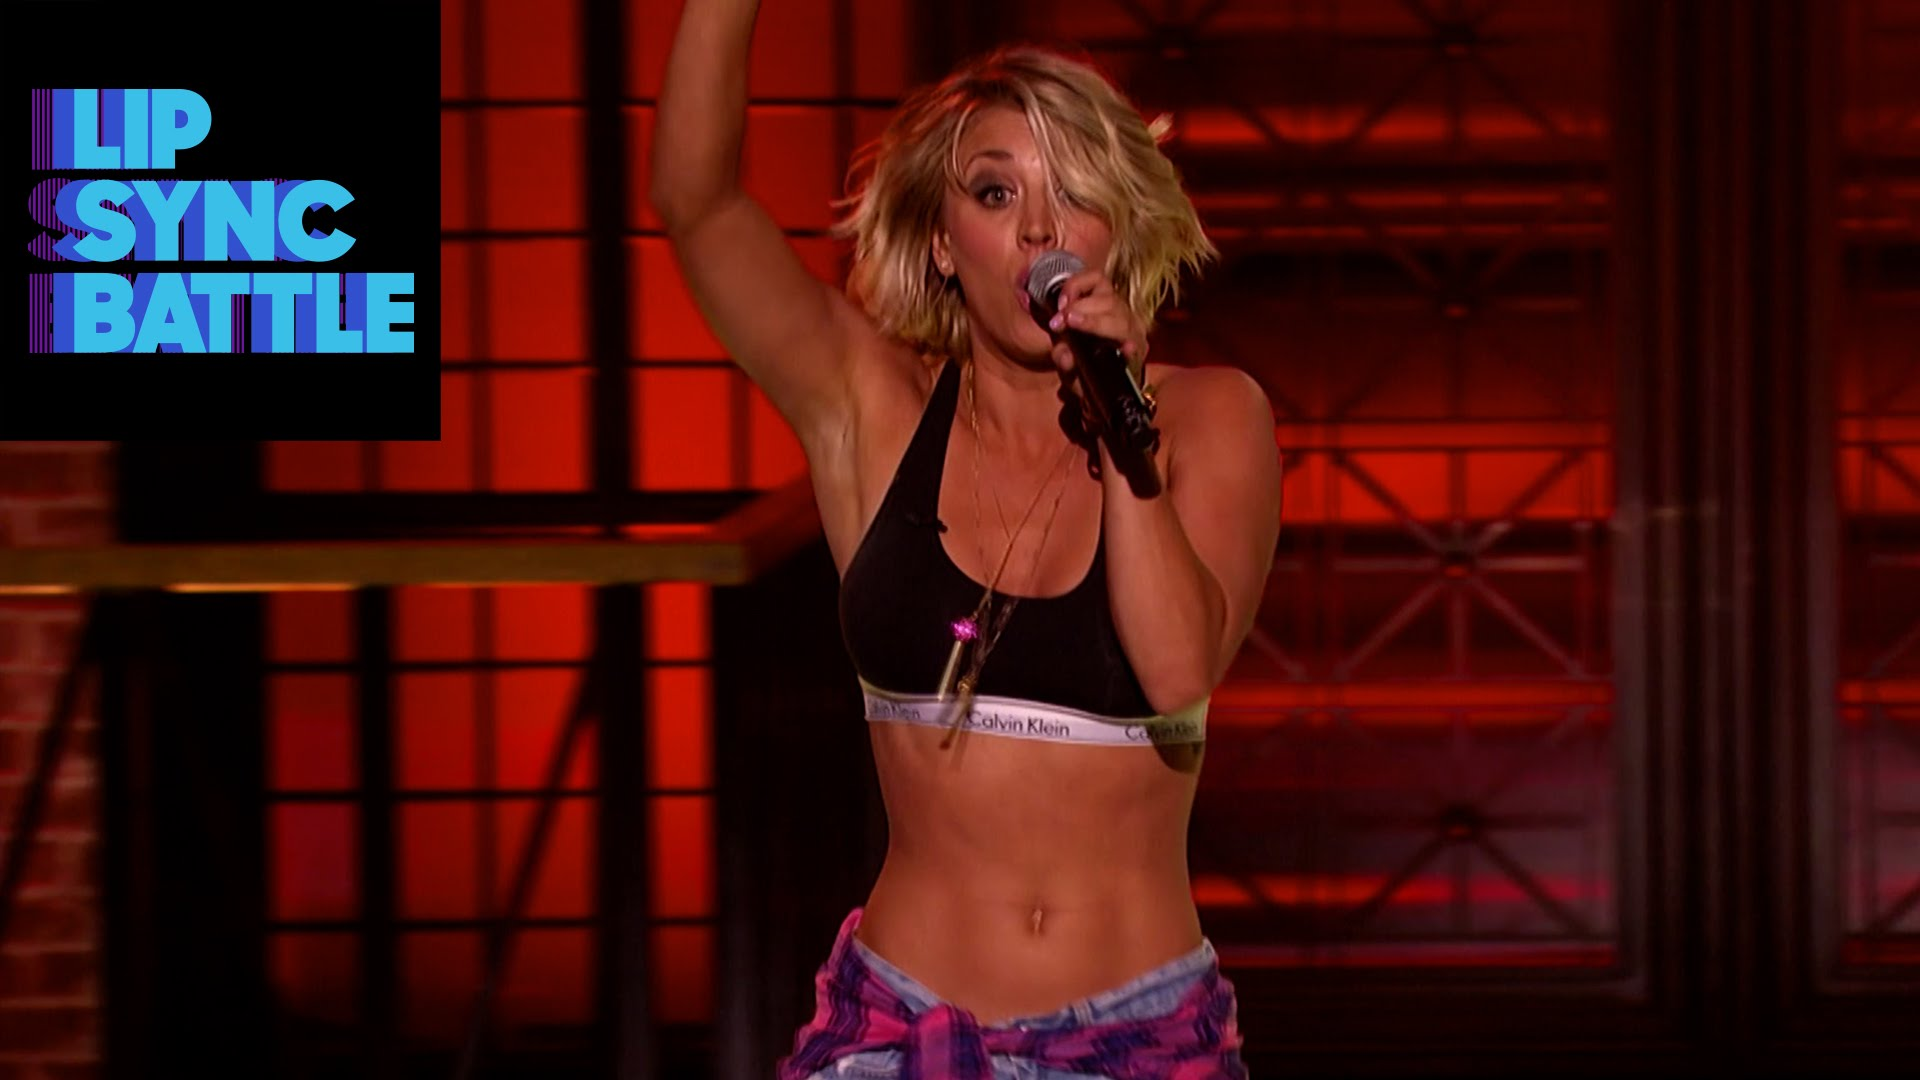 Watch this clip of Kaley Cuoco lip-syncing Ludacris because it will make your night